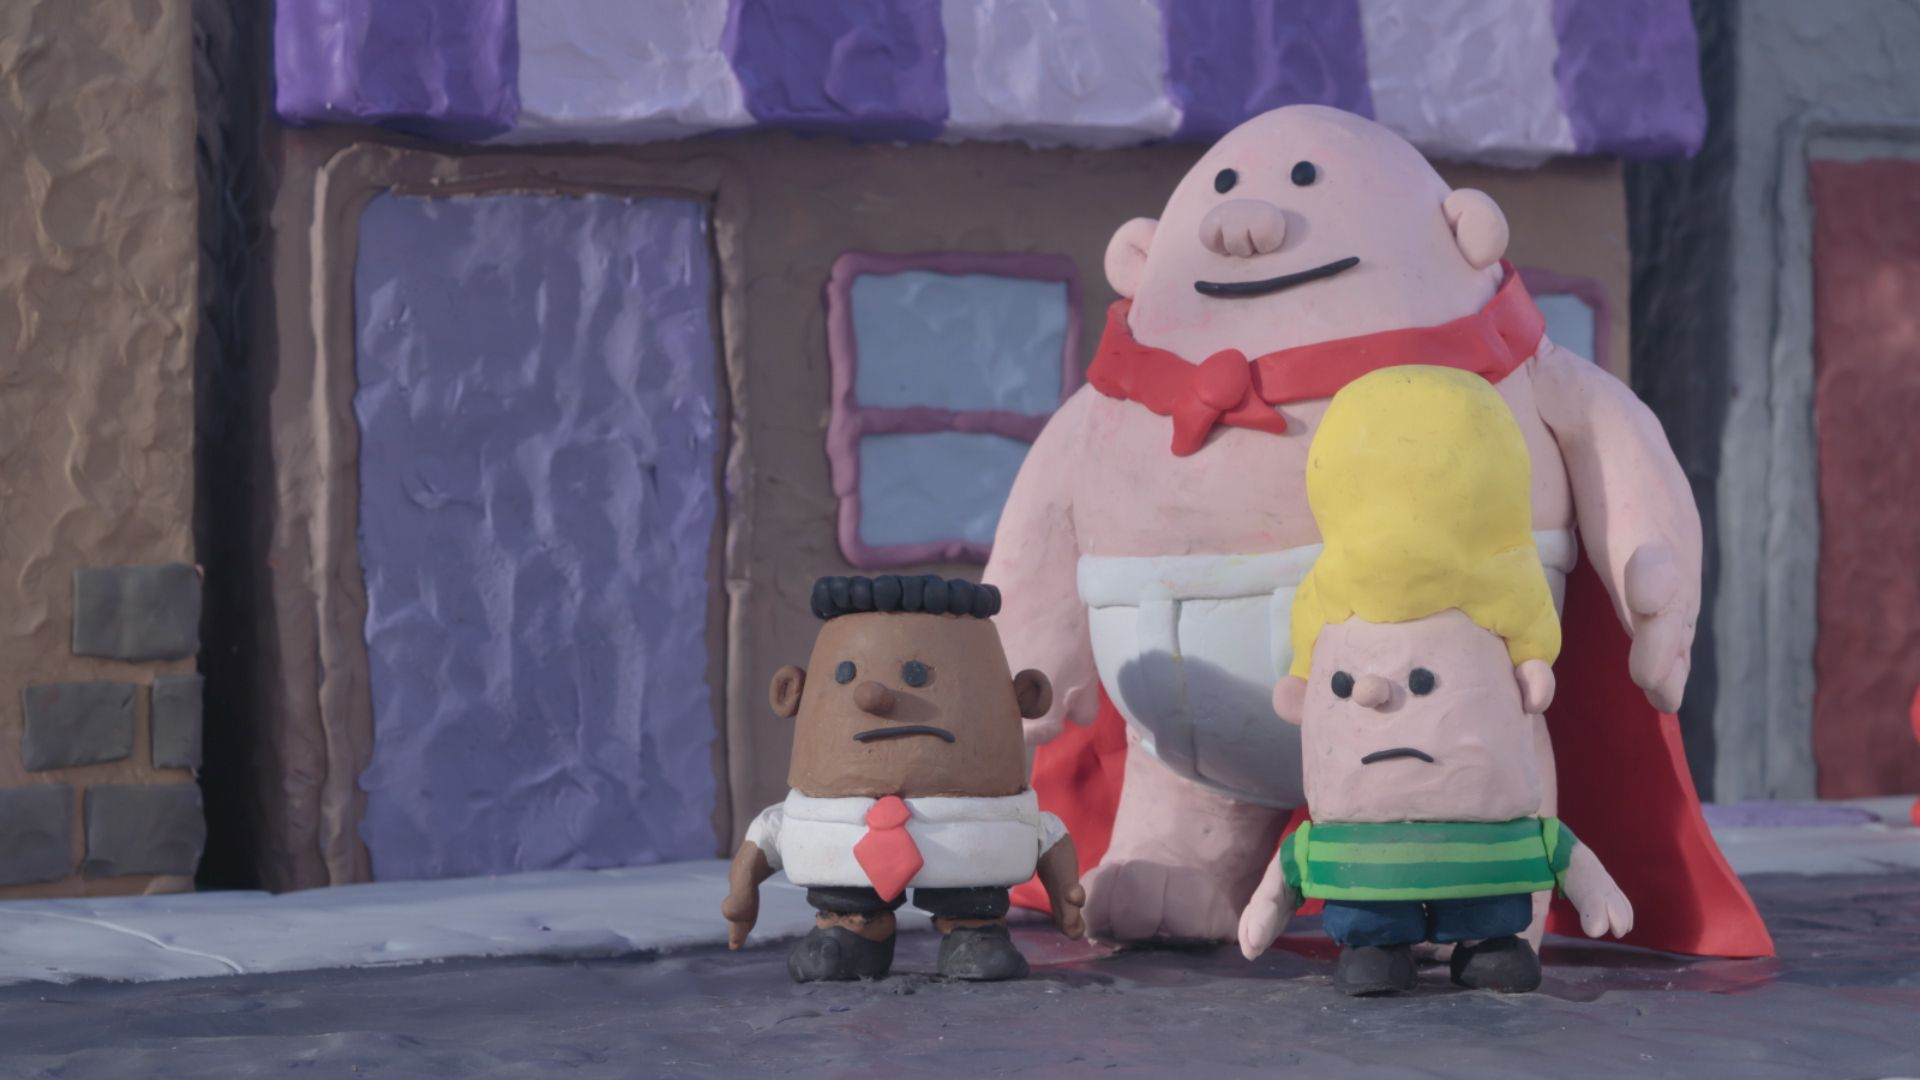 captain underpants netflix series clip plays with animation styles